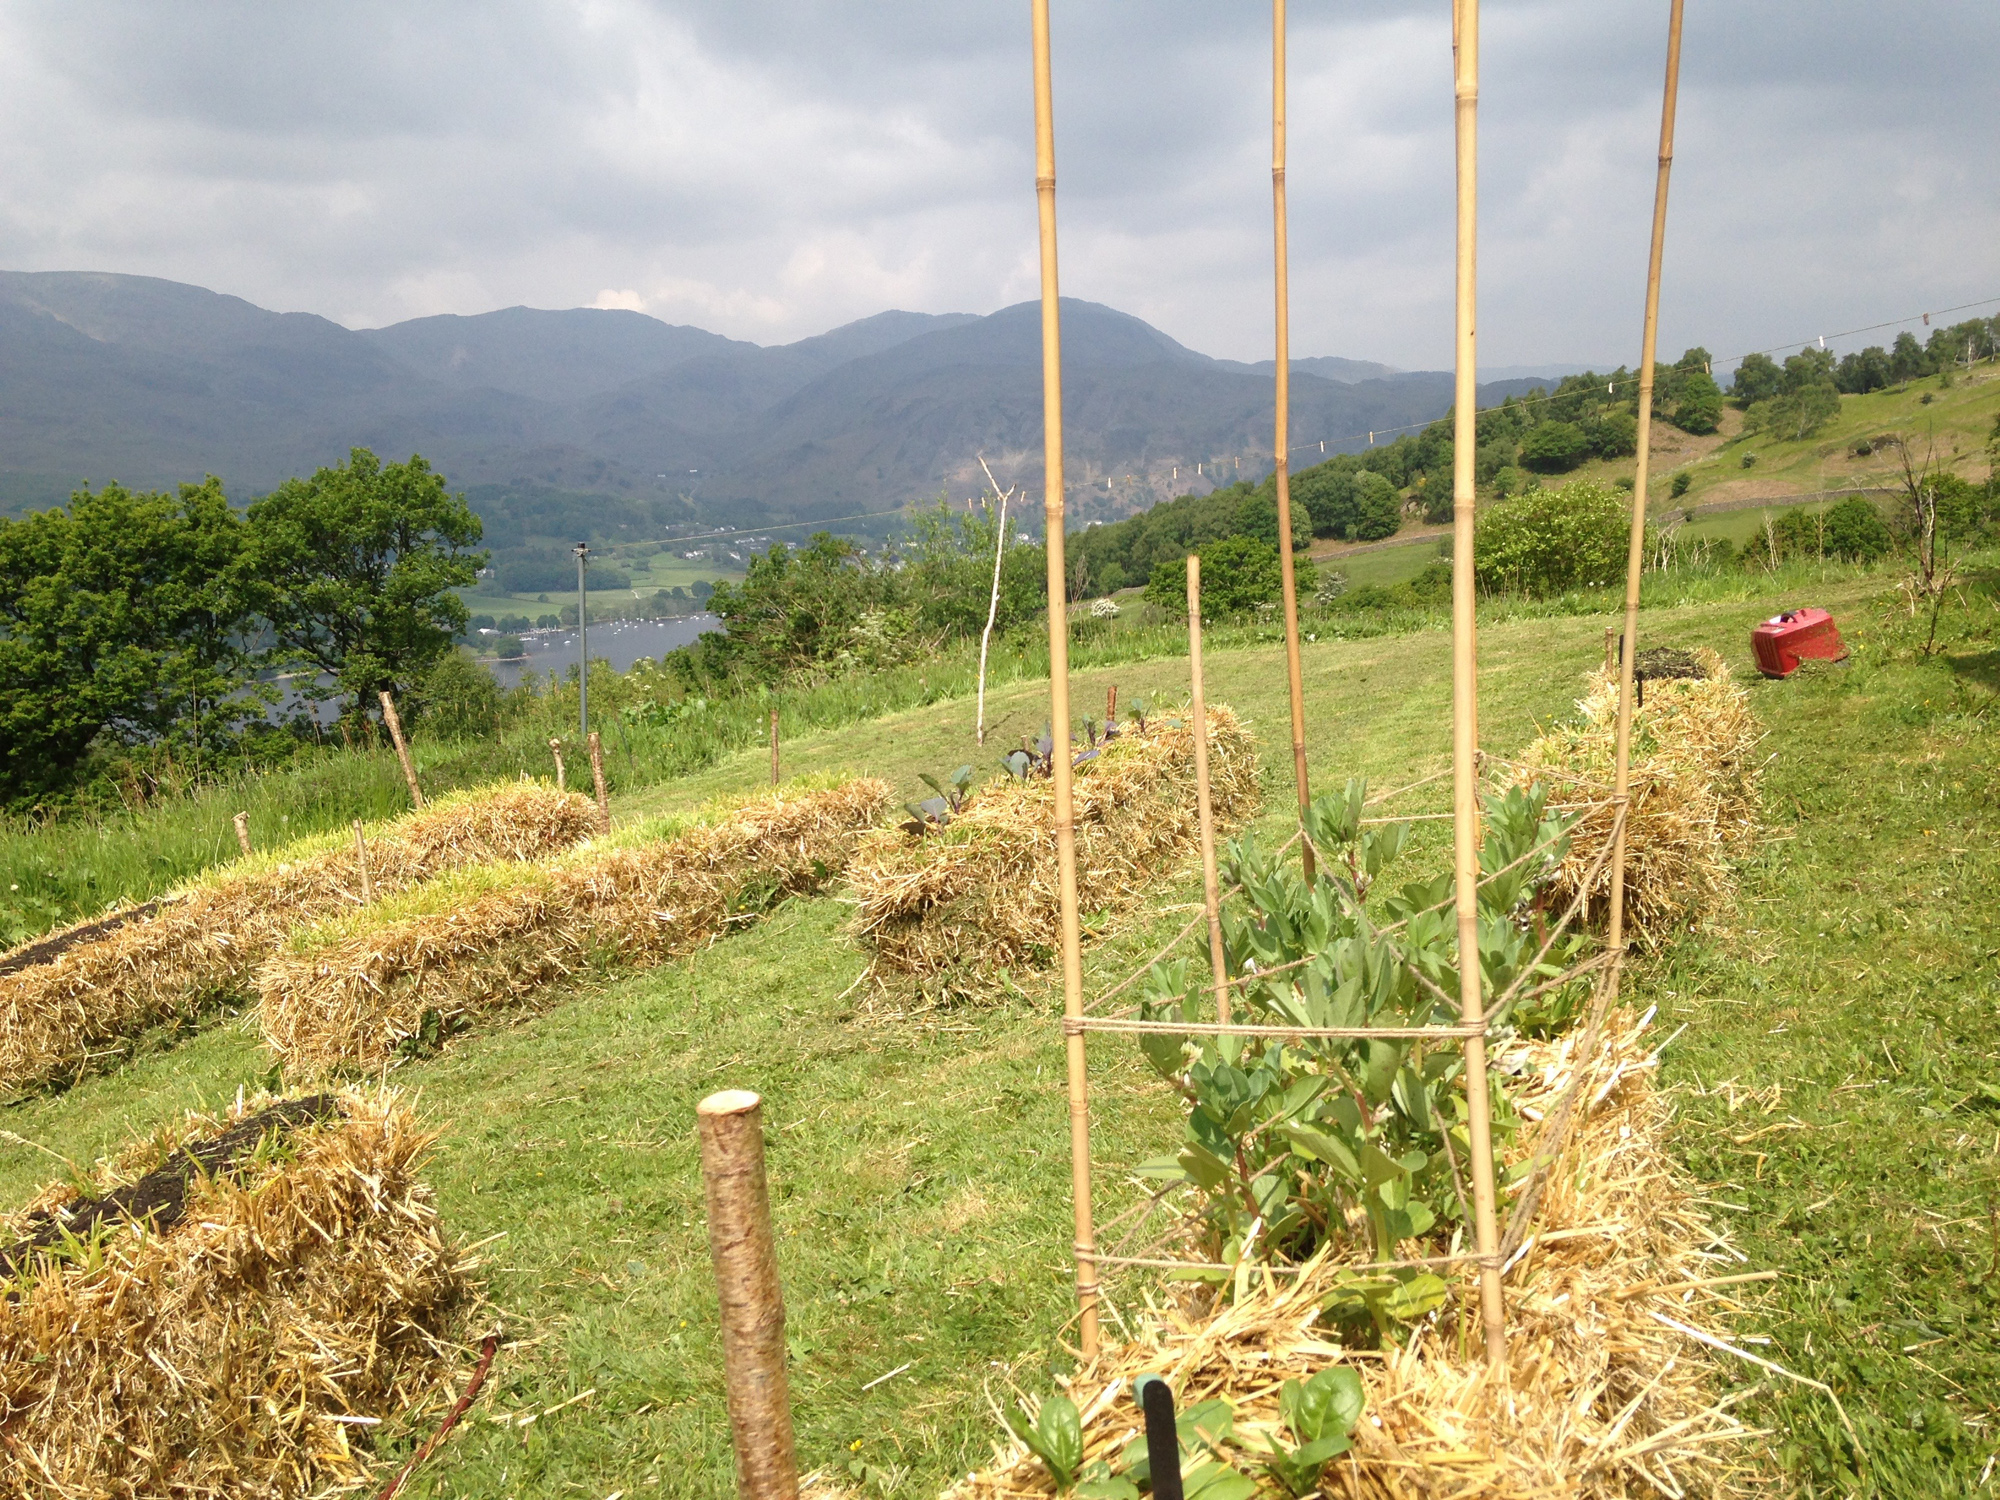 Strawbale veg garden in mid-May